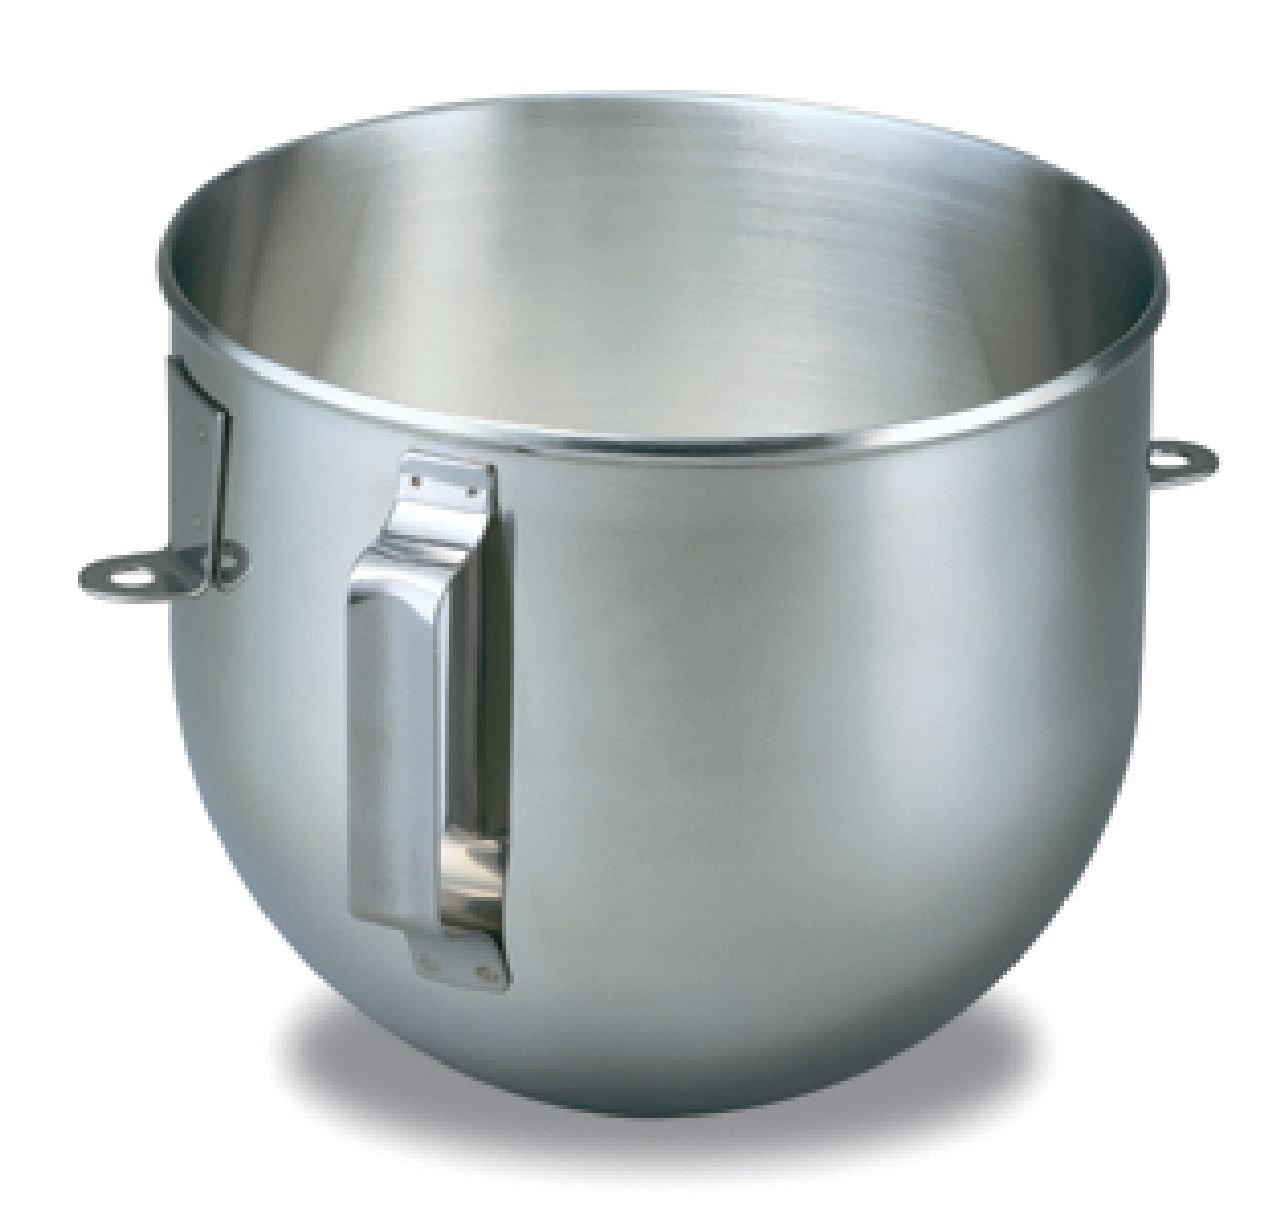 KitchenAid K5ASB Brushed Stainless Steel 5 Quart Mixing Bowl with Handle for Bowl Lift Stand Mixers